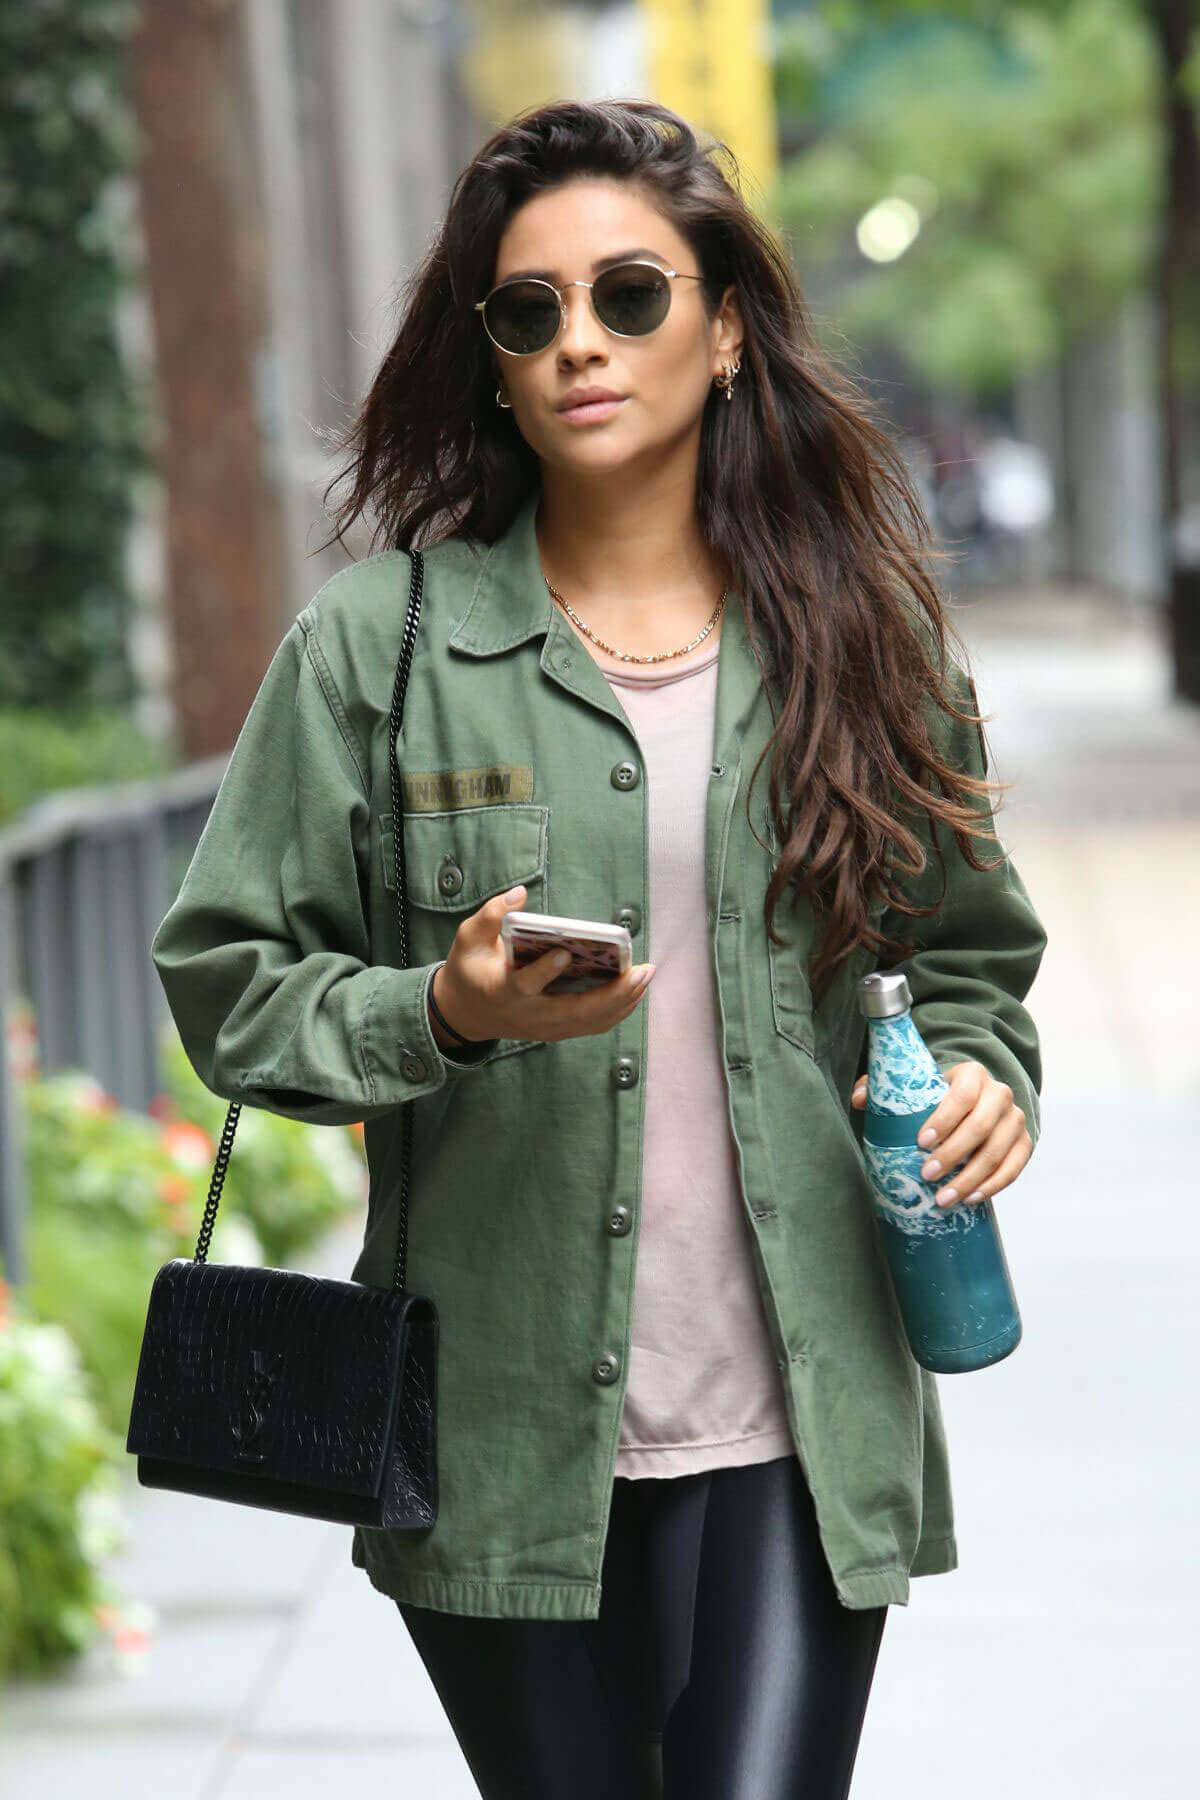 Shay Mitchell Stills Out and About in New York Images